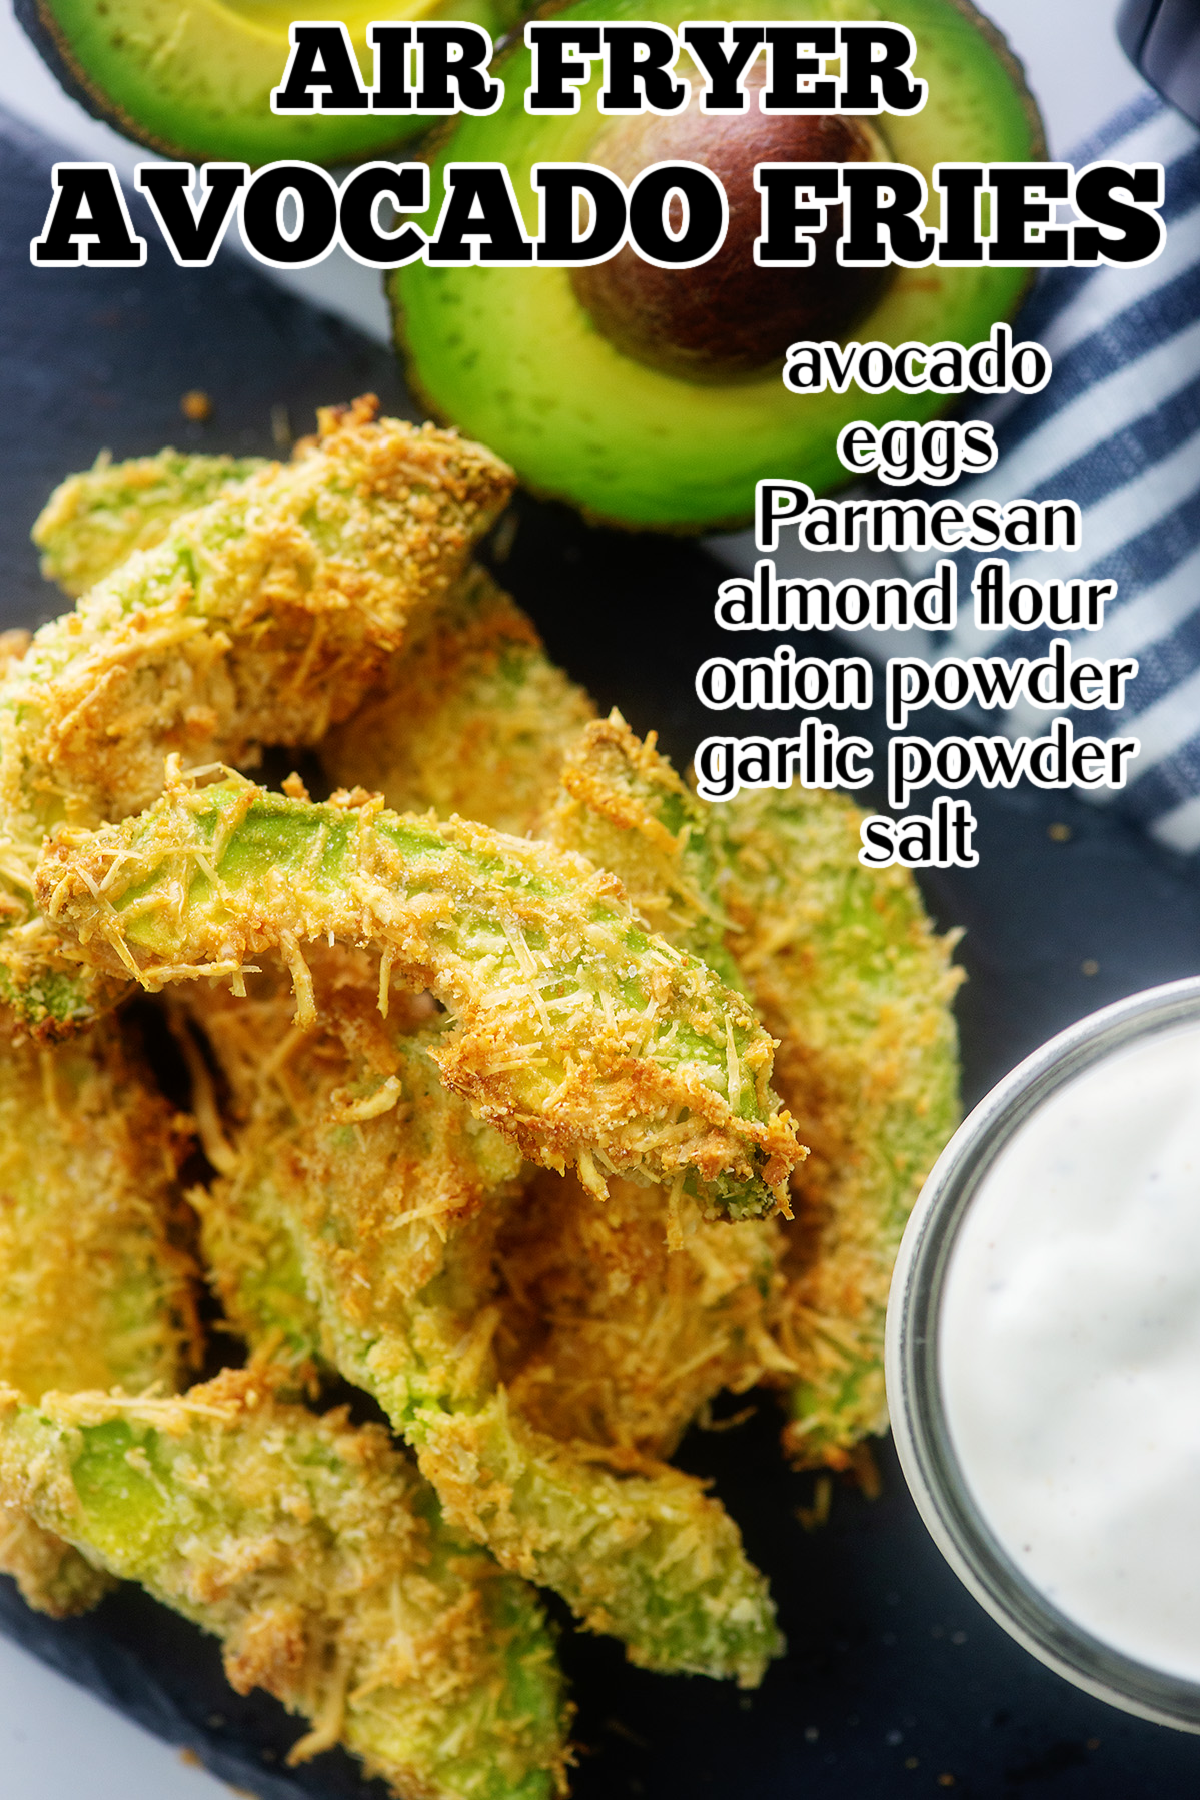 These air fried avocado fries are nice and crispy on the outside with a soft, warm center! #keto #avocado #airfryer